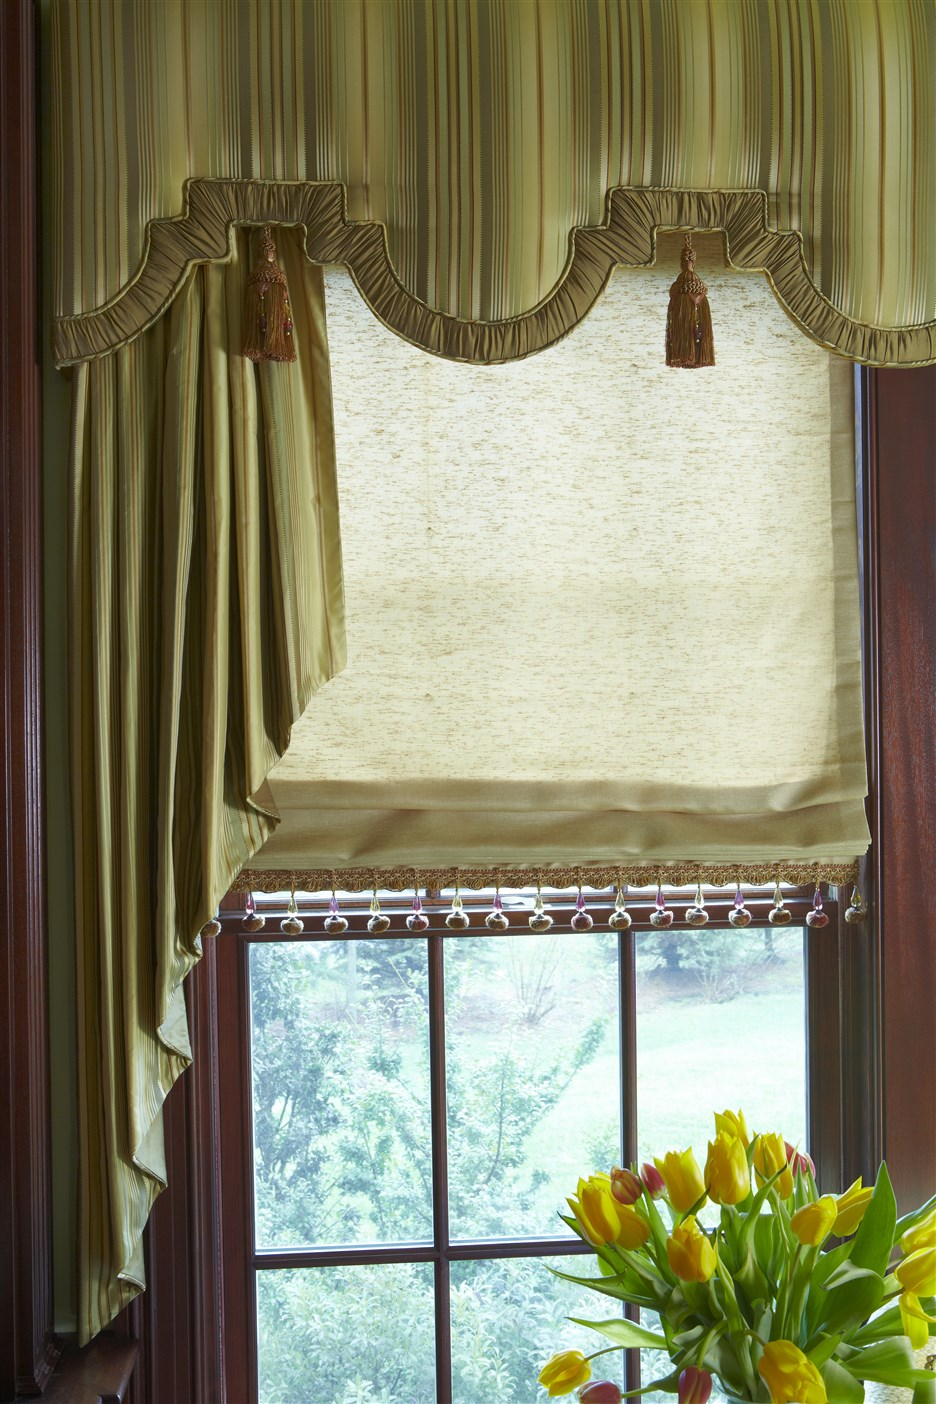 Living room window with luxurious curtain